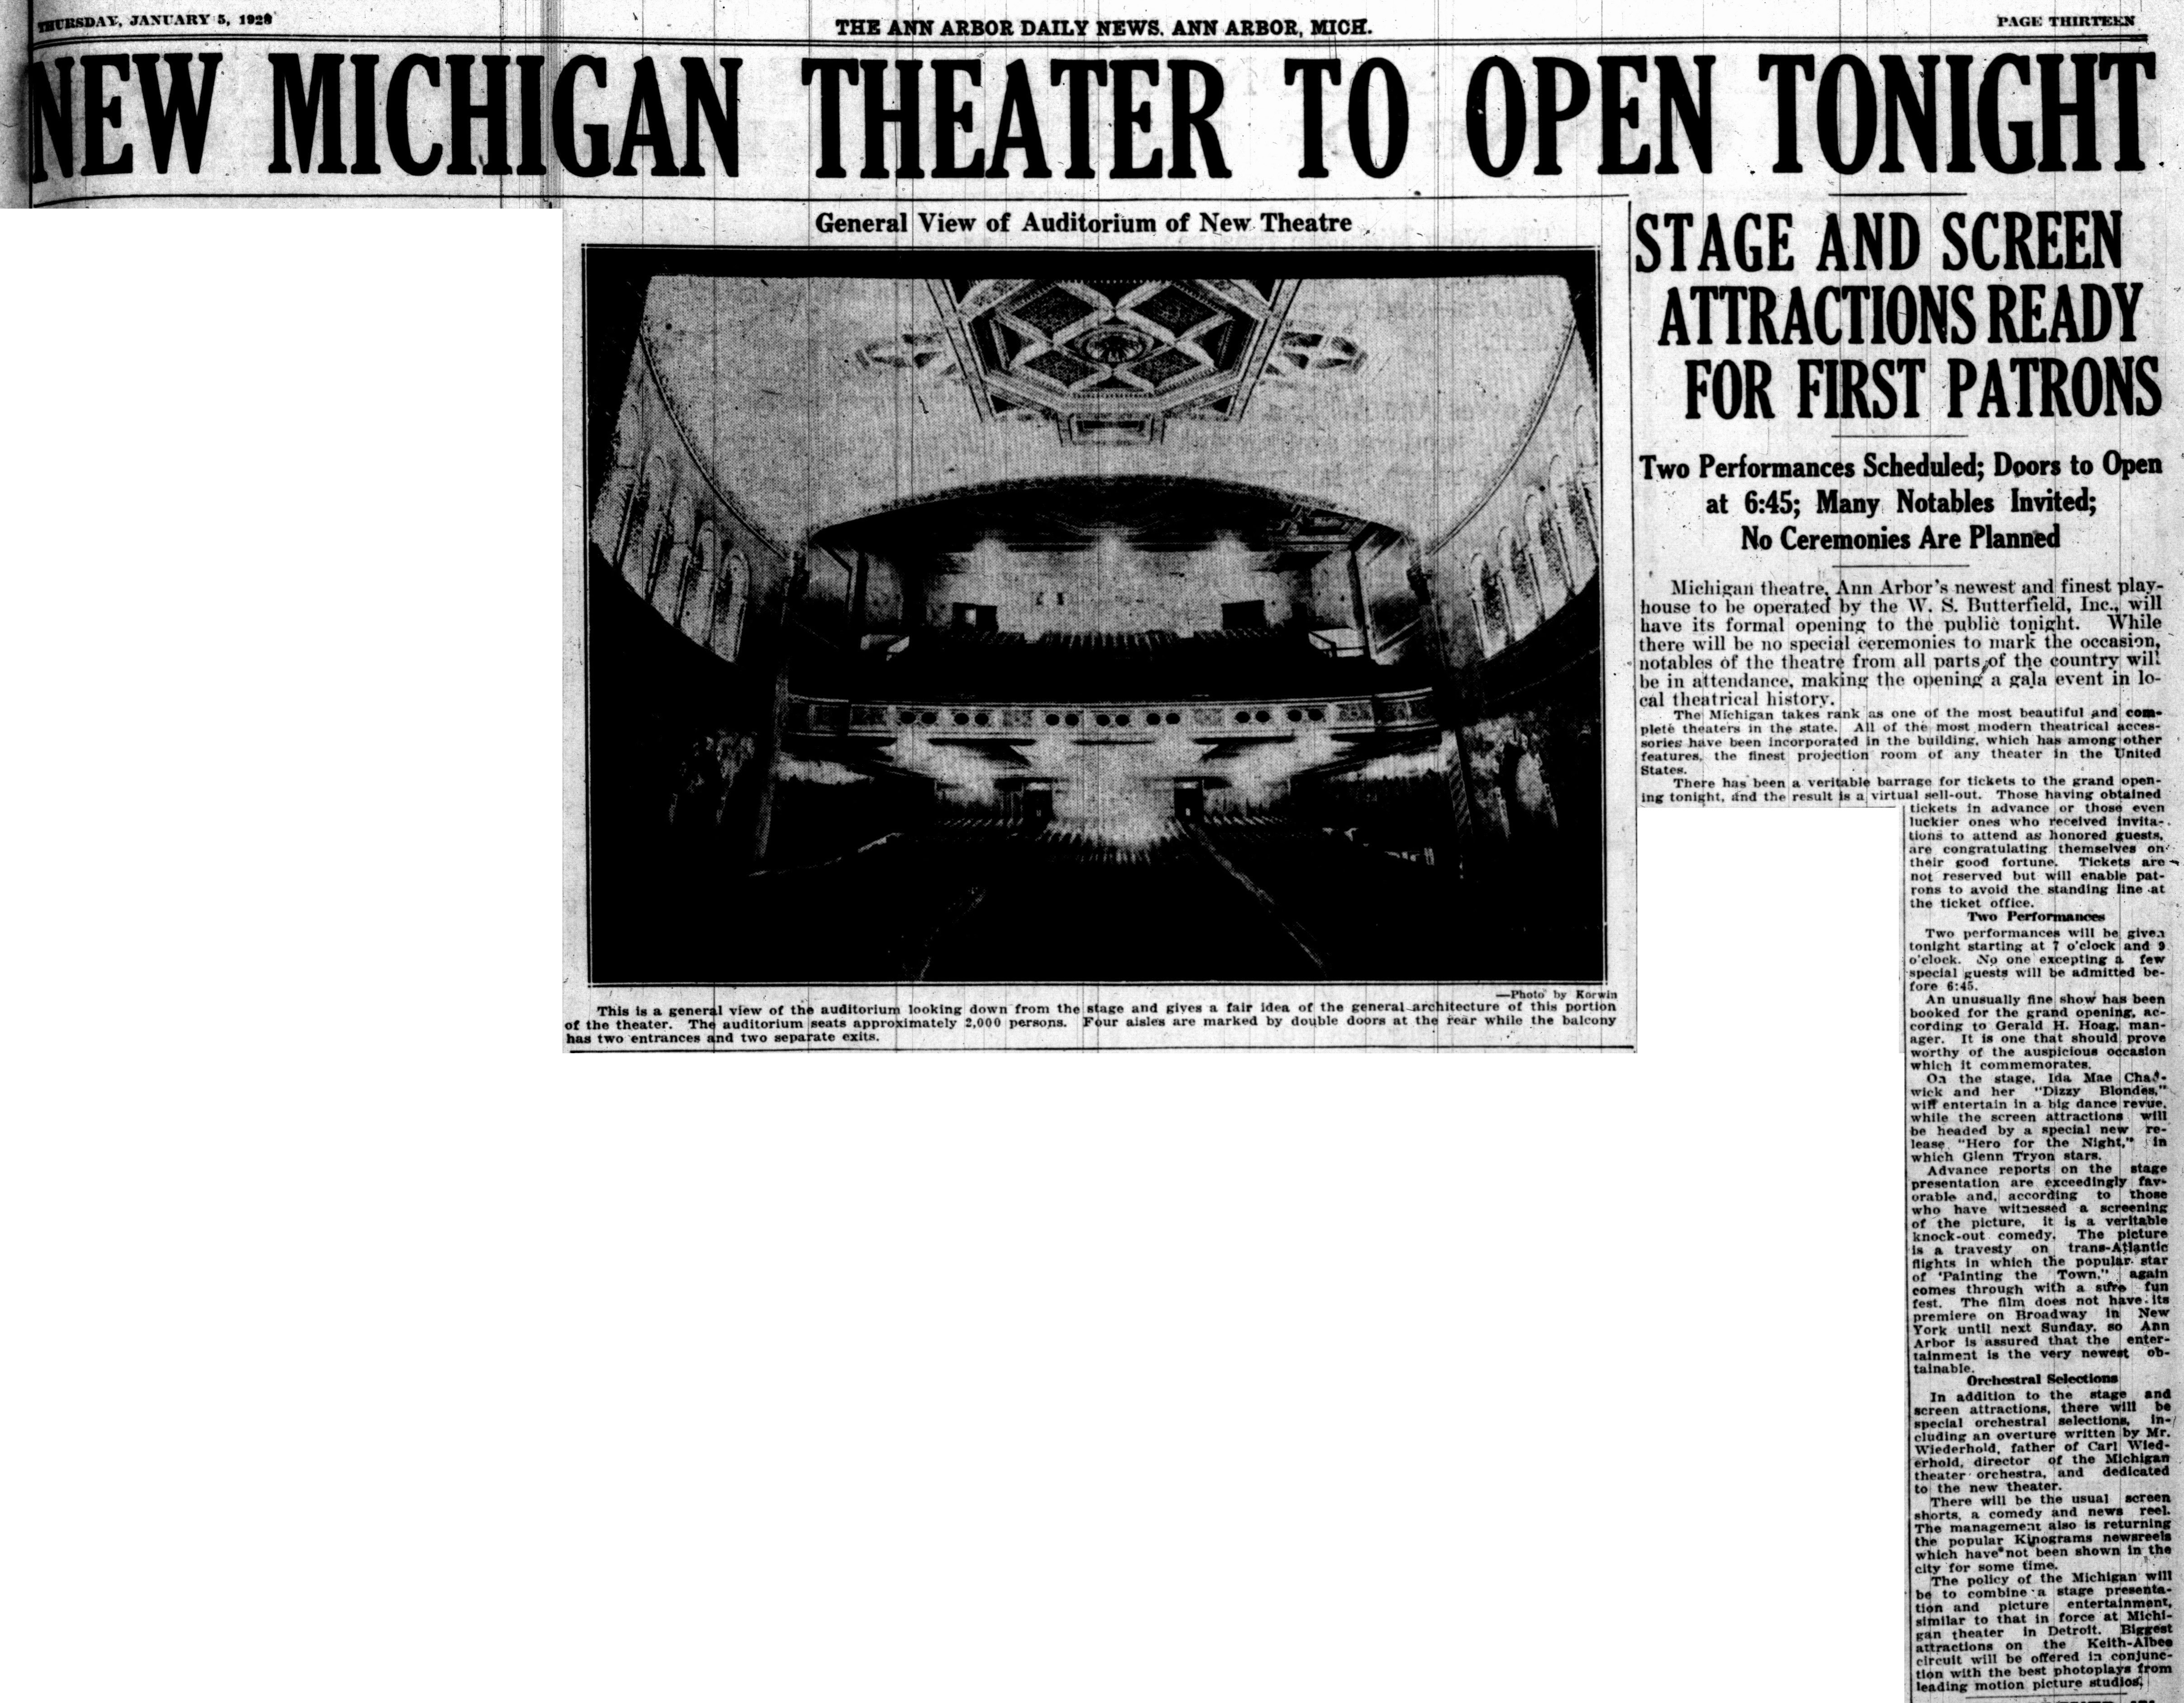 New Michigan Theater To Open Tonight image